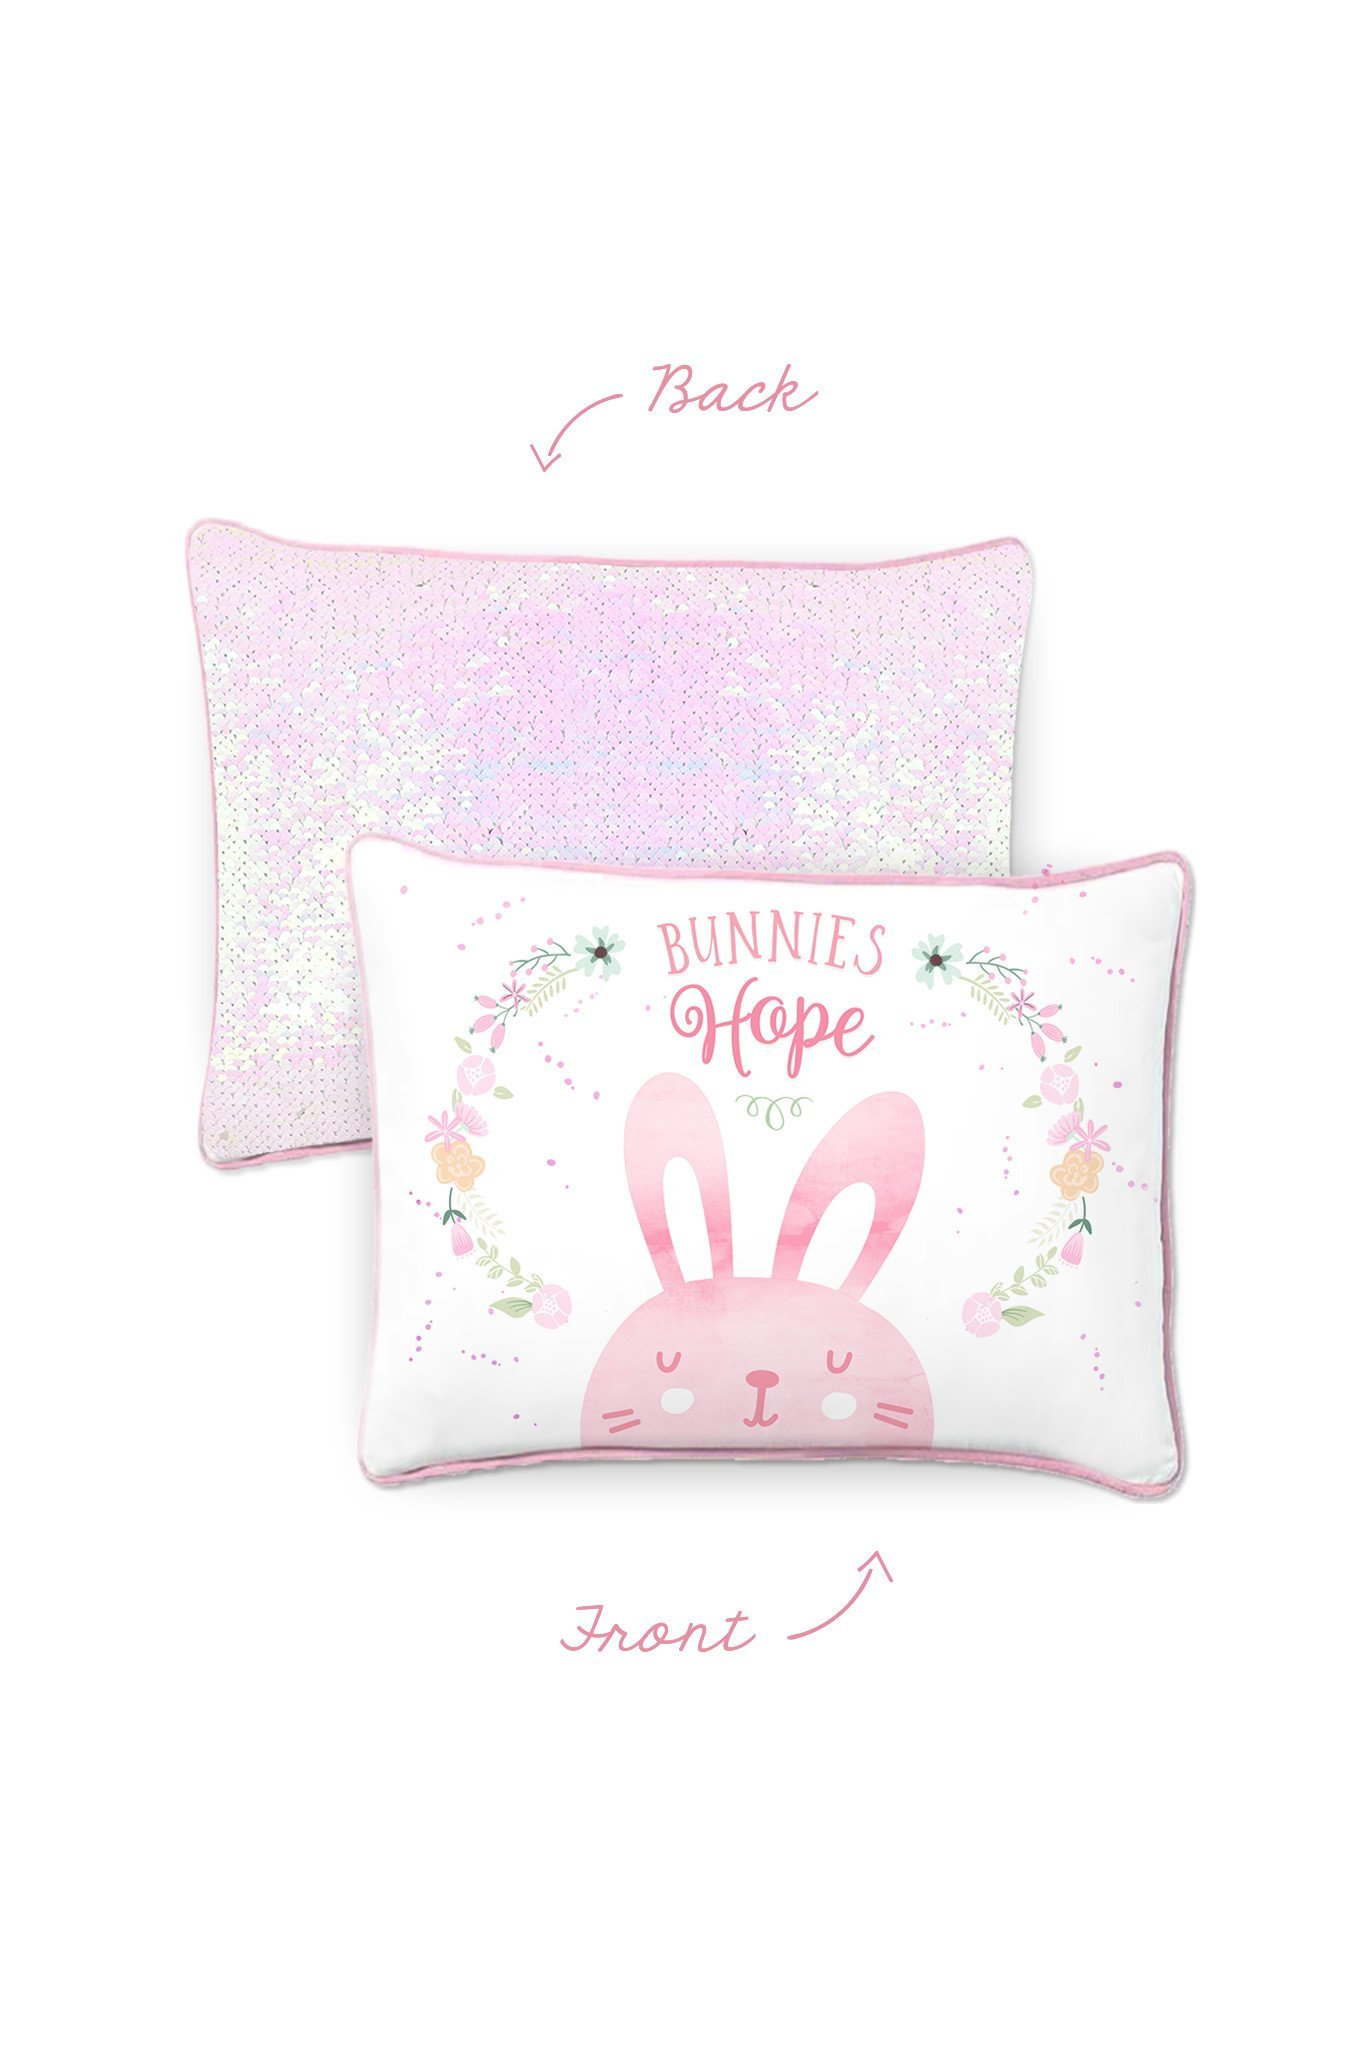 HOPE Bunny Kids Pillow with Reversible Iridescent & Silver Color-Changing Mermaid Sequins